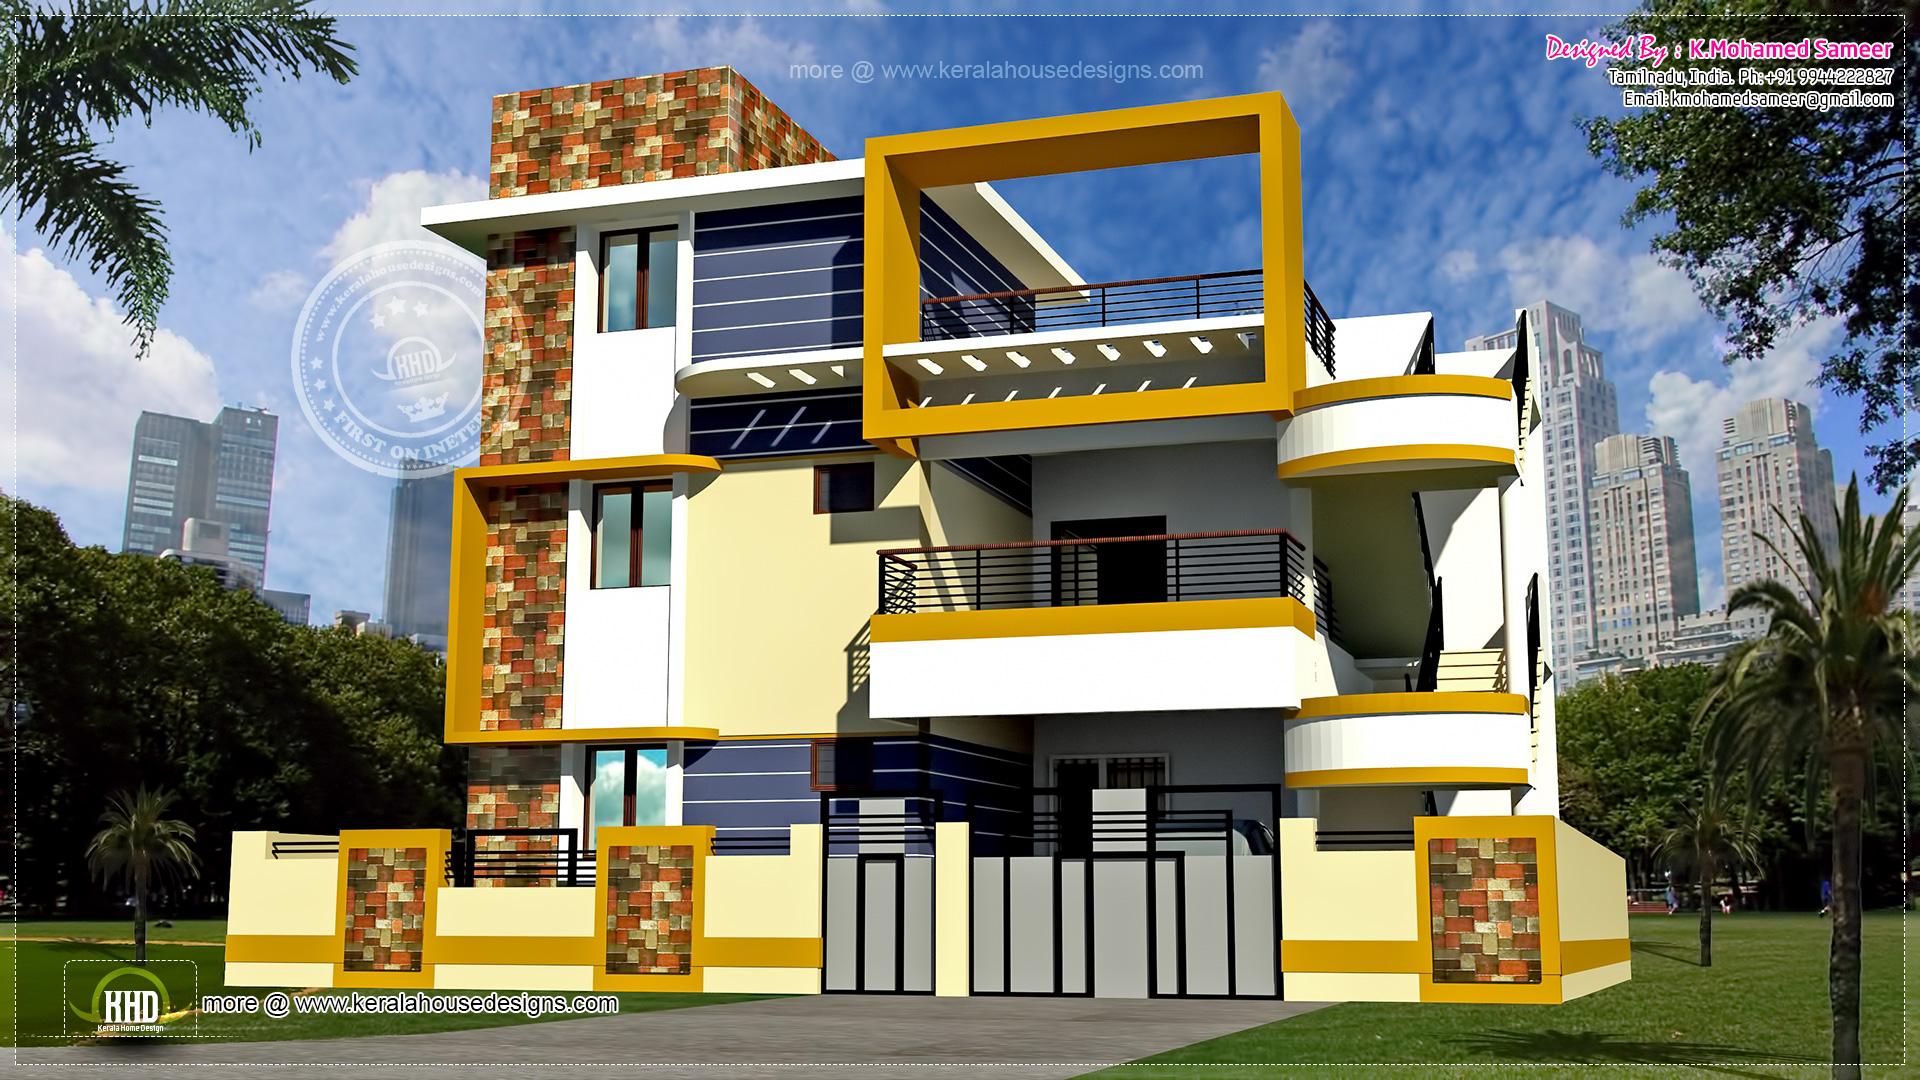 Modern 3 floor tamilnadu house design kerala home design for Tamilnadu house designs photos